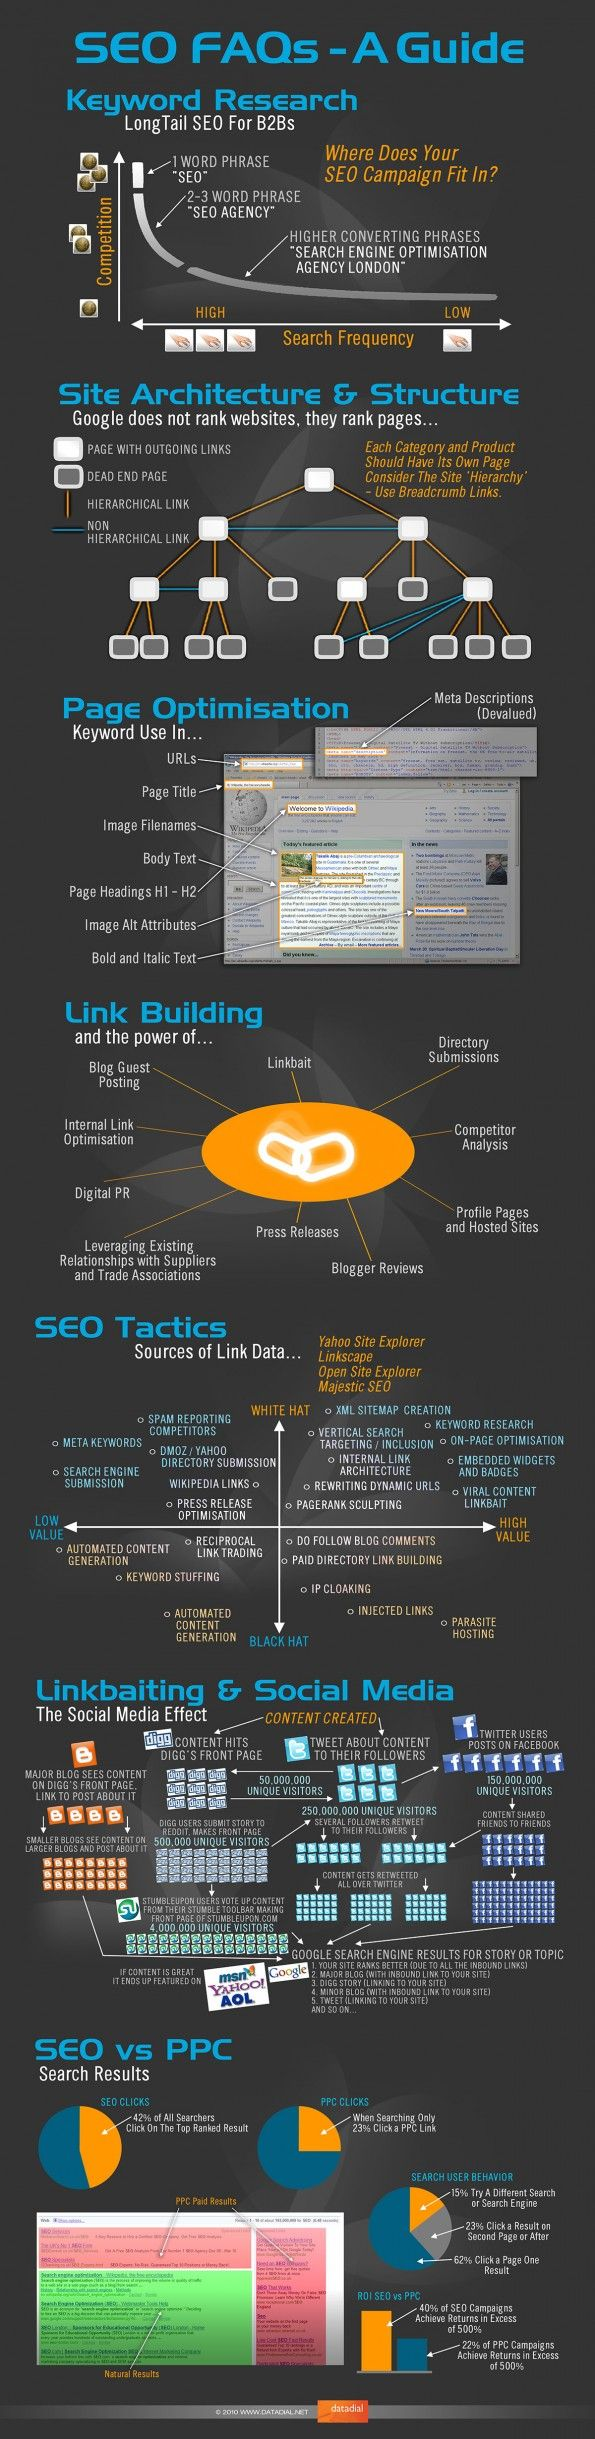 SEO FAQs #Infographic: A Guide